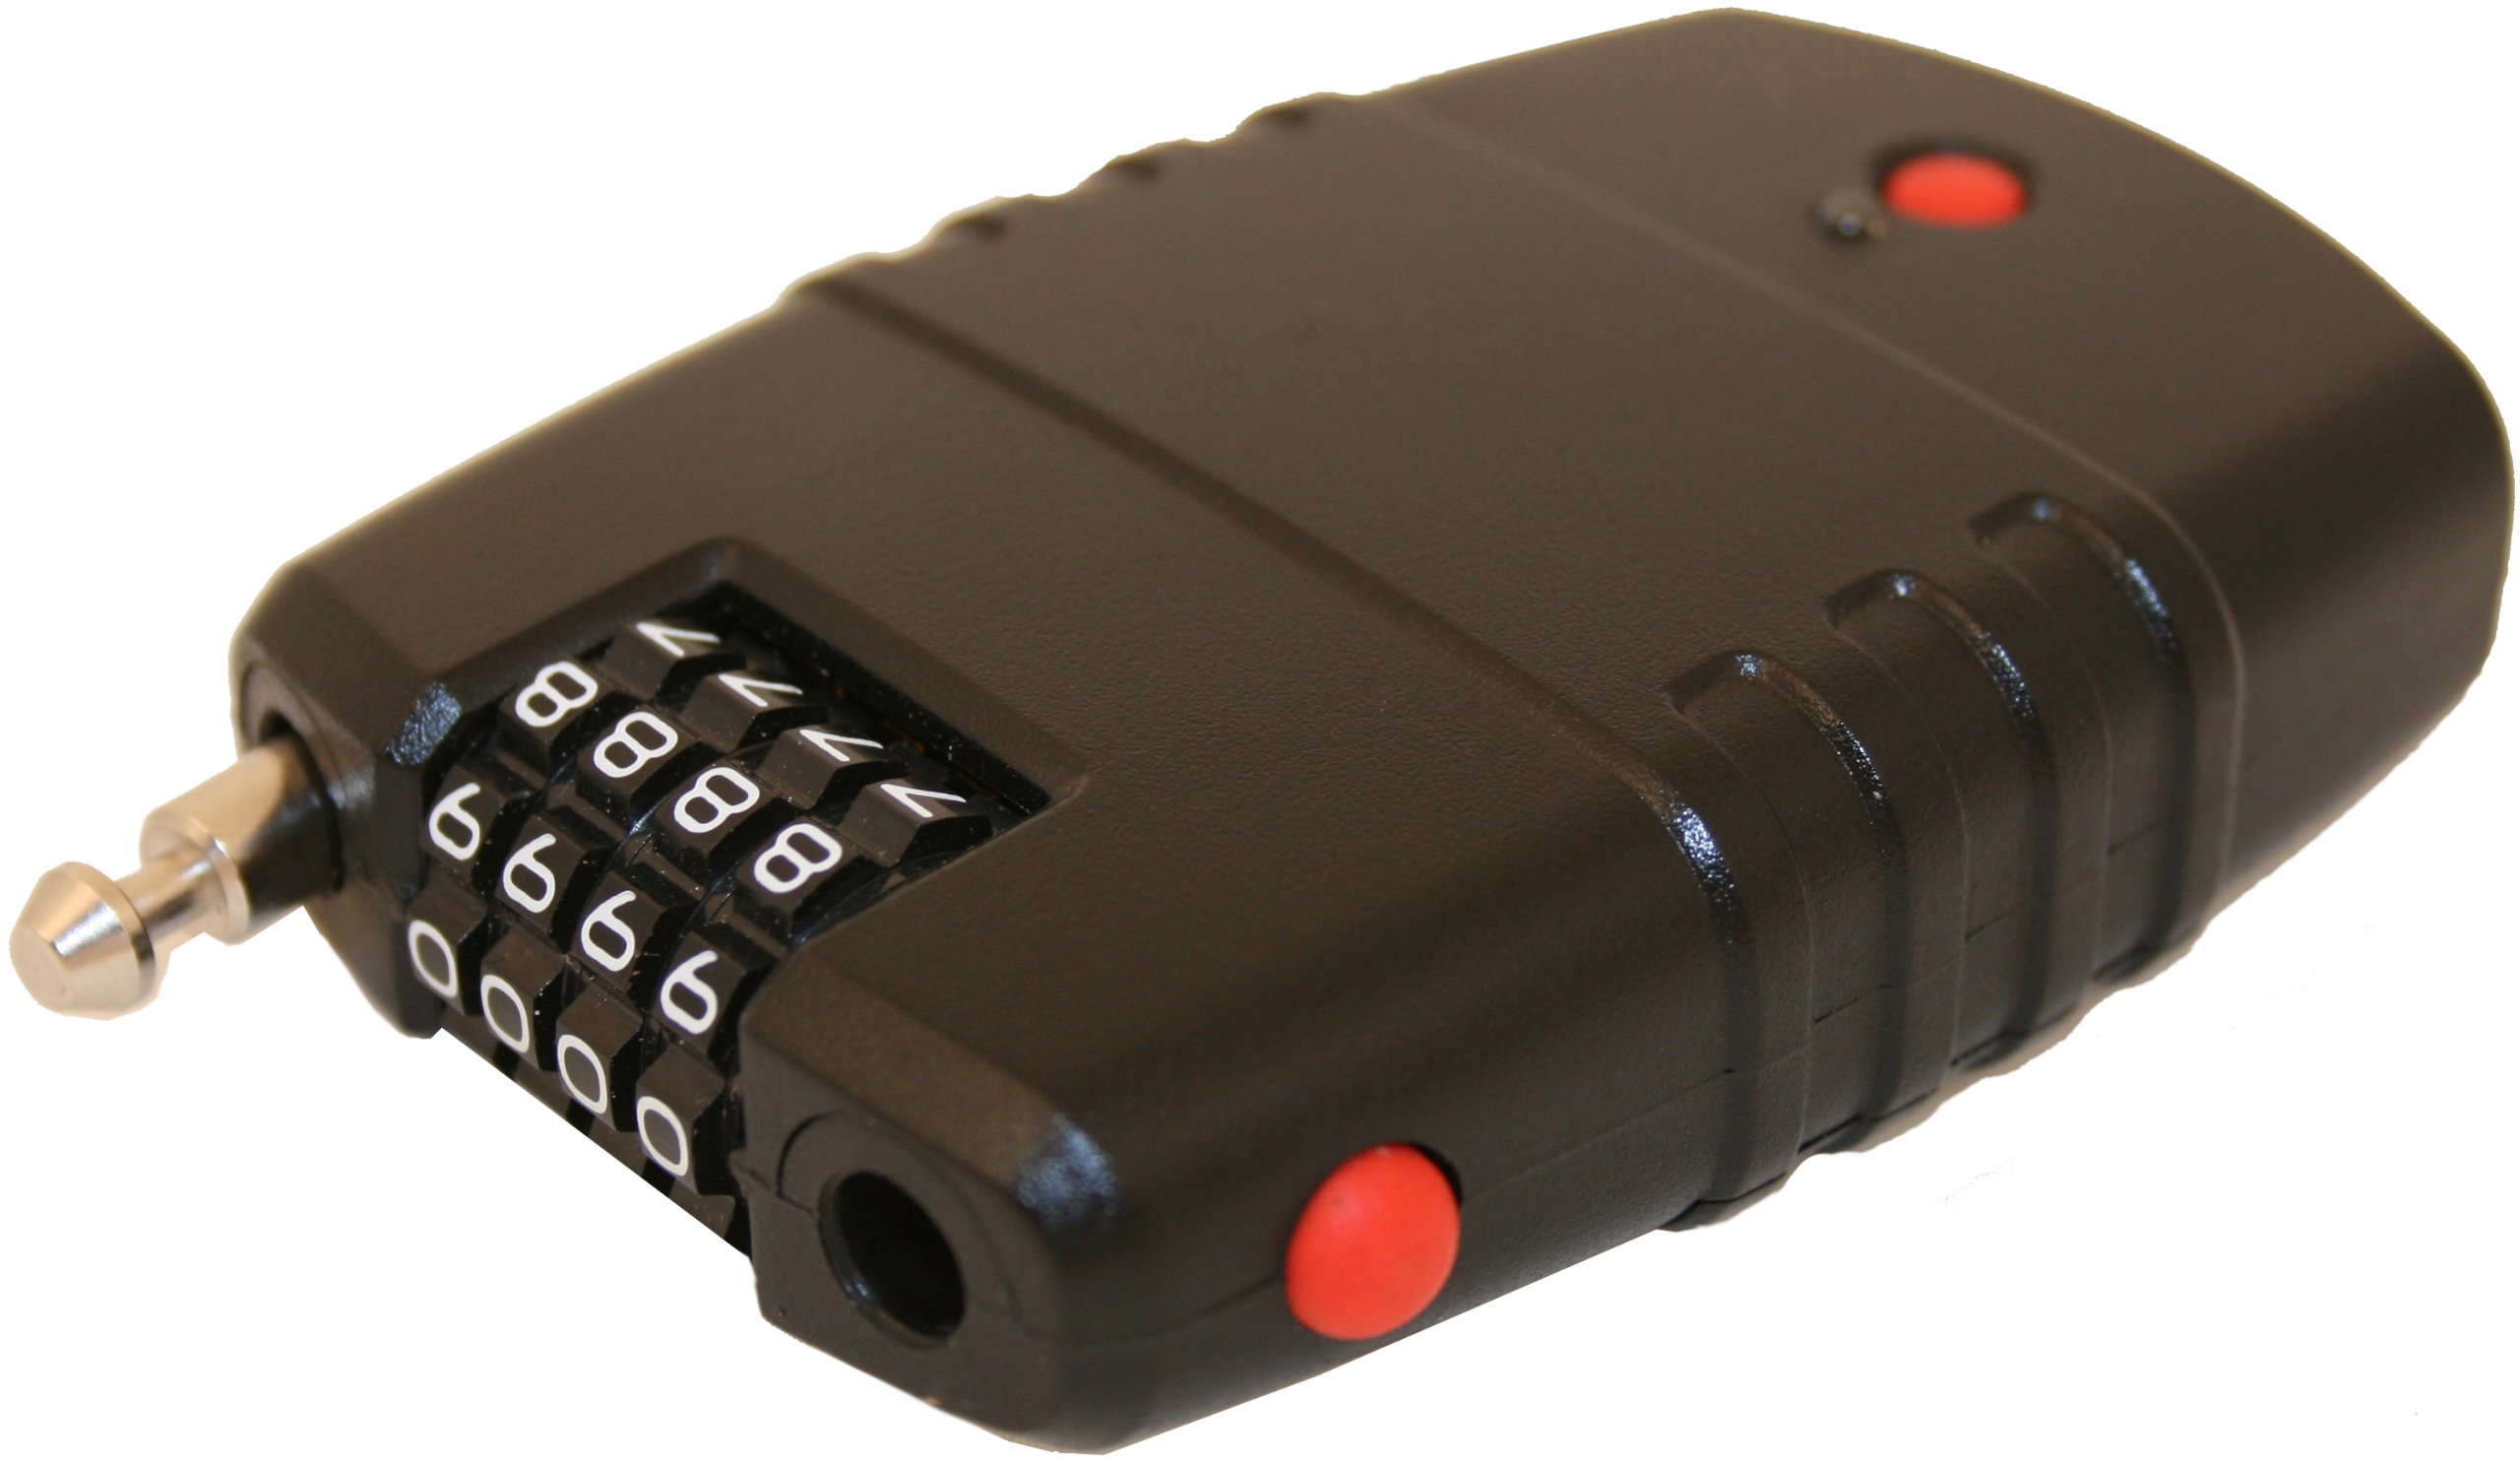 FJM Security SX-776 Cable Lock Alarm with Piercing 120 Decibel Siren by FJM Security (Image #5)